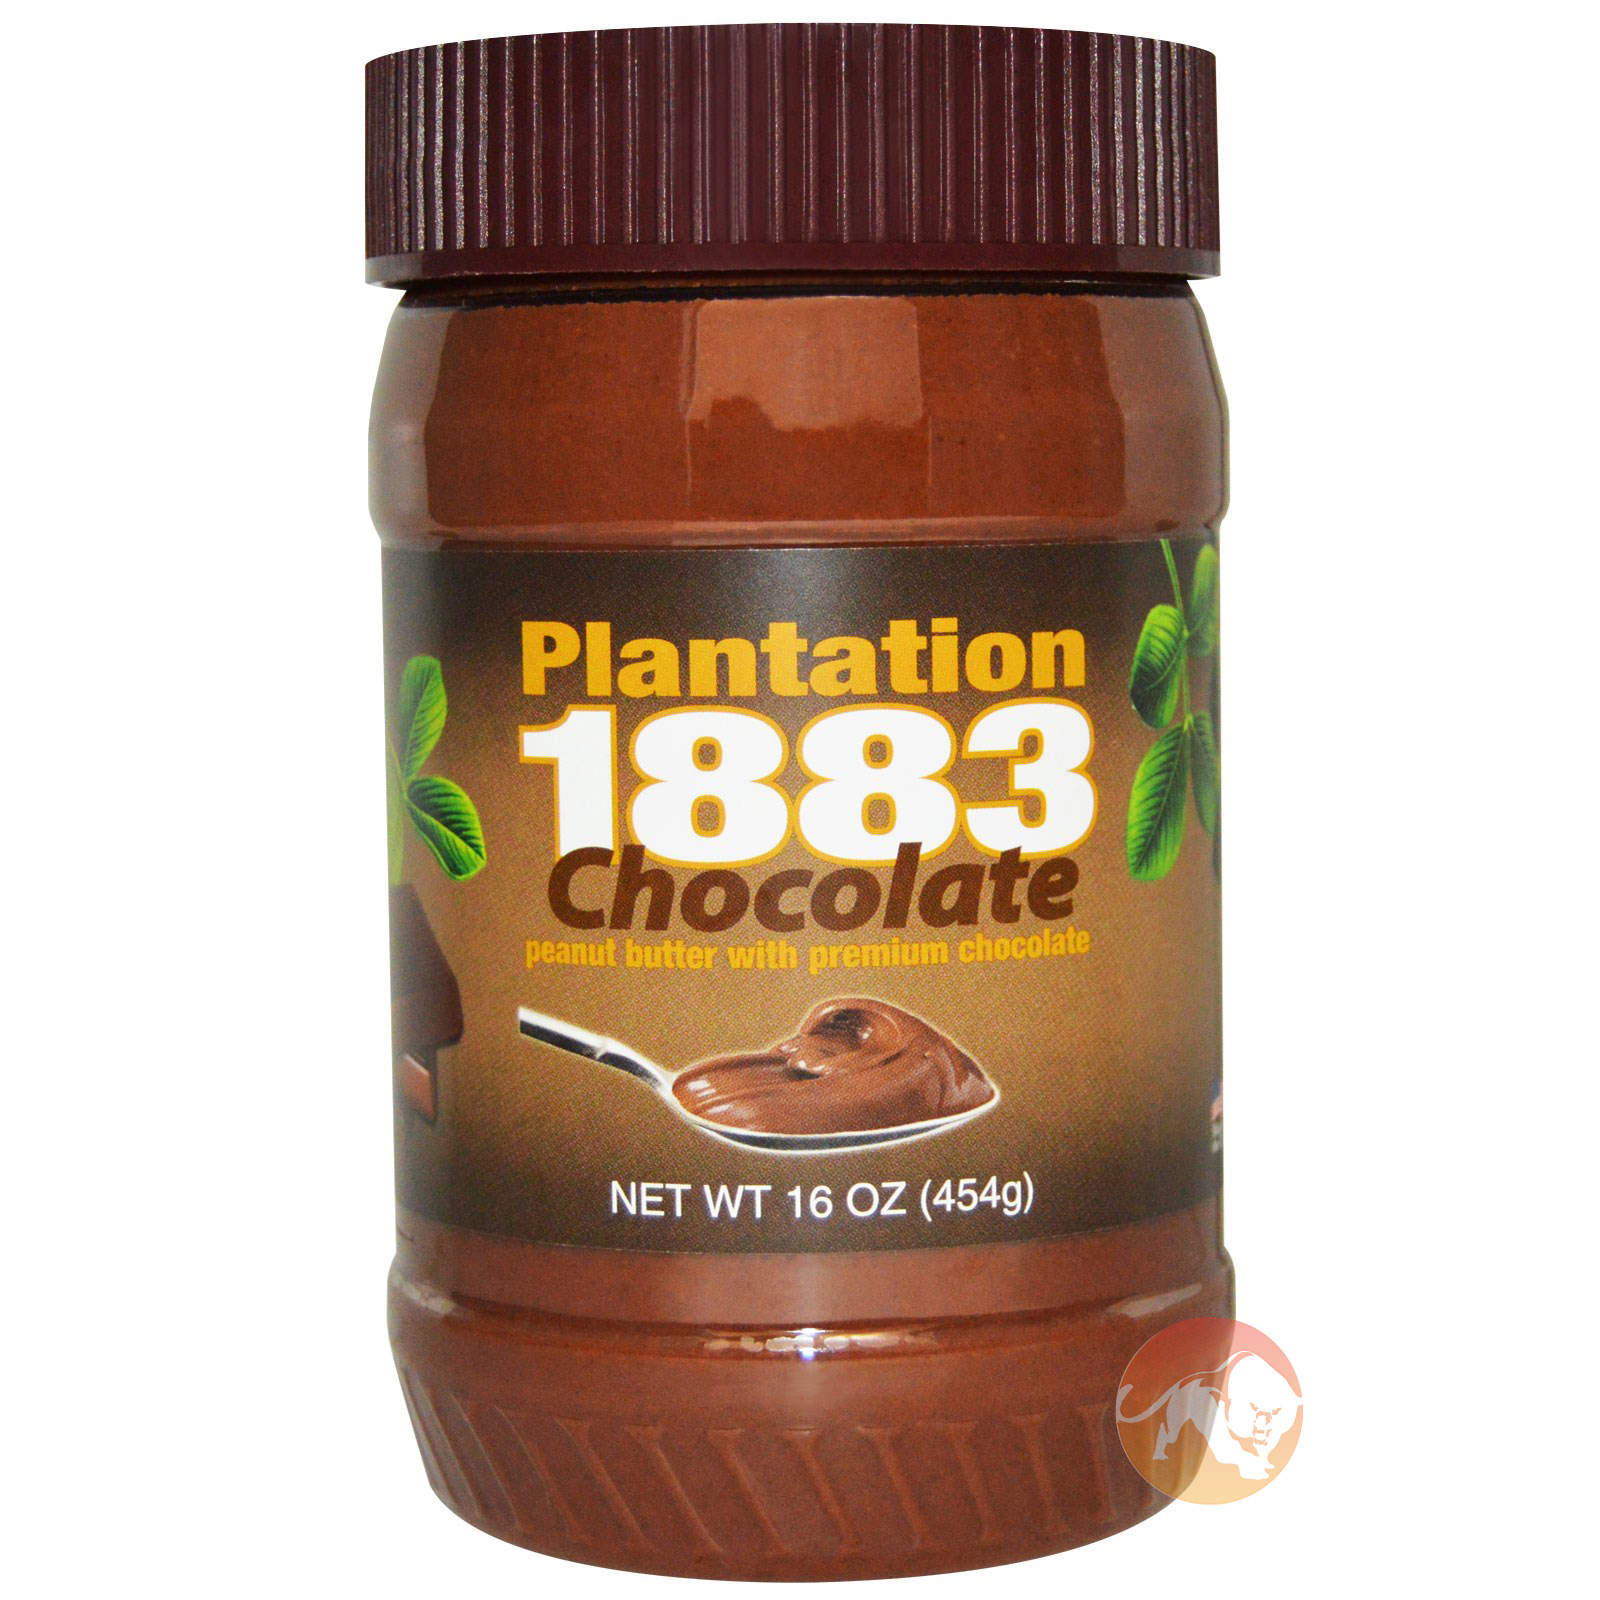 Plantation 1883 Chocolate Peanut Butter 454g